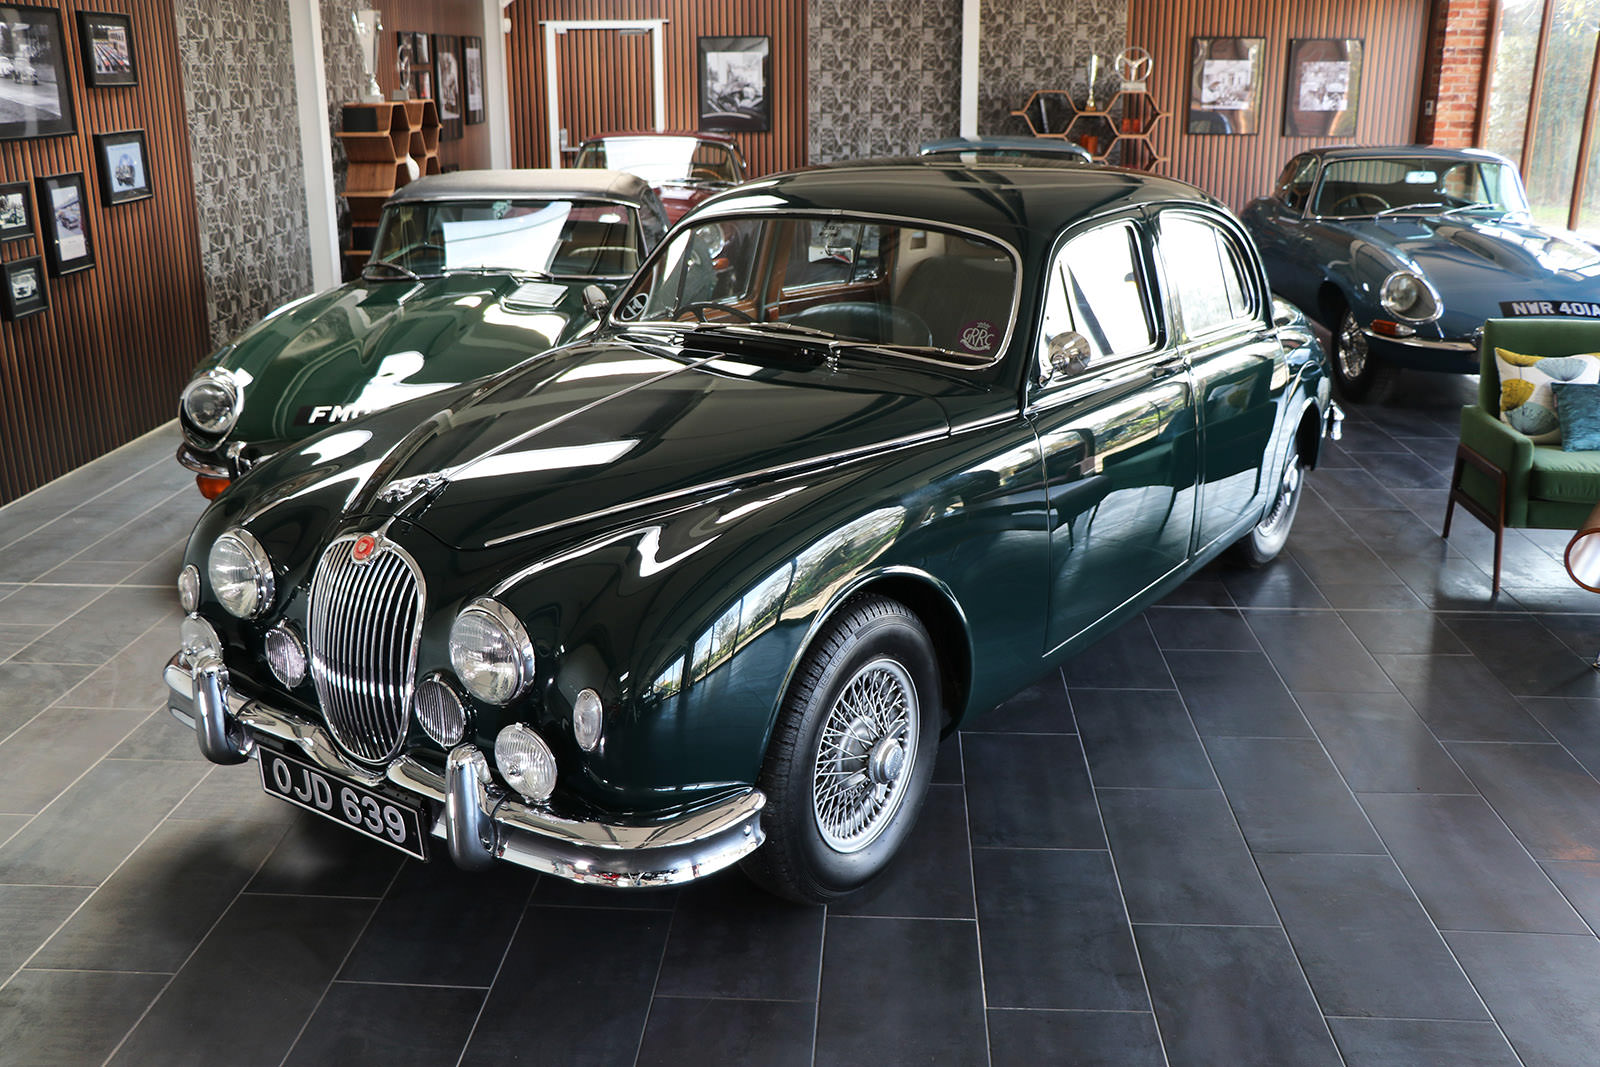 1959_Jaguar_Mark 1_sayer selection_duncan hamilton_lady cheatham_1_web.jpg